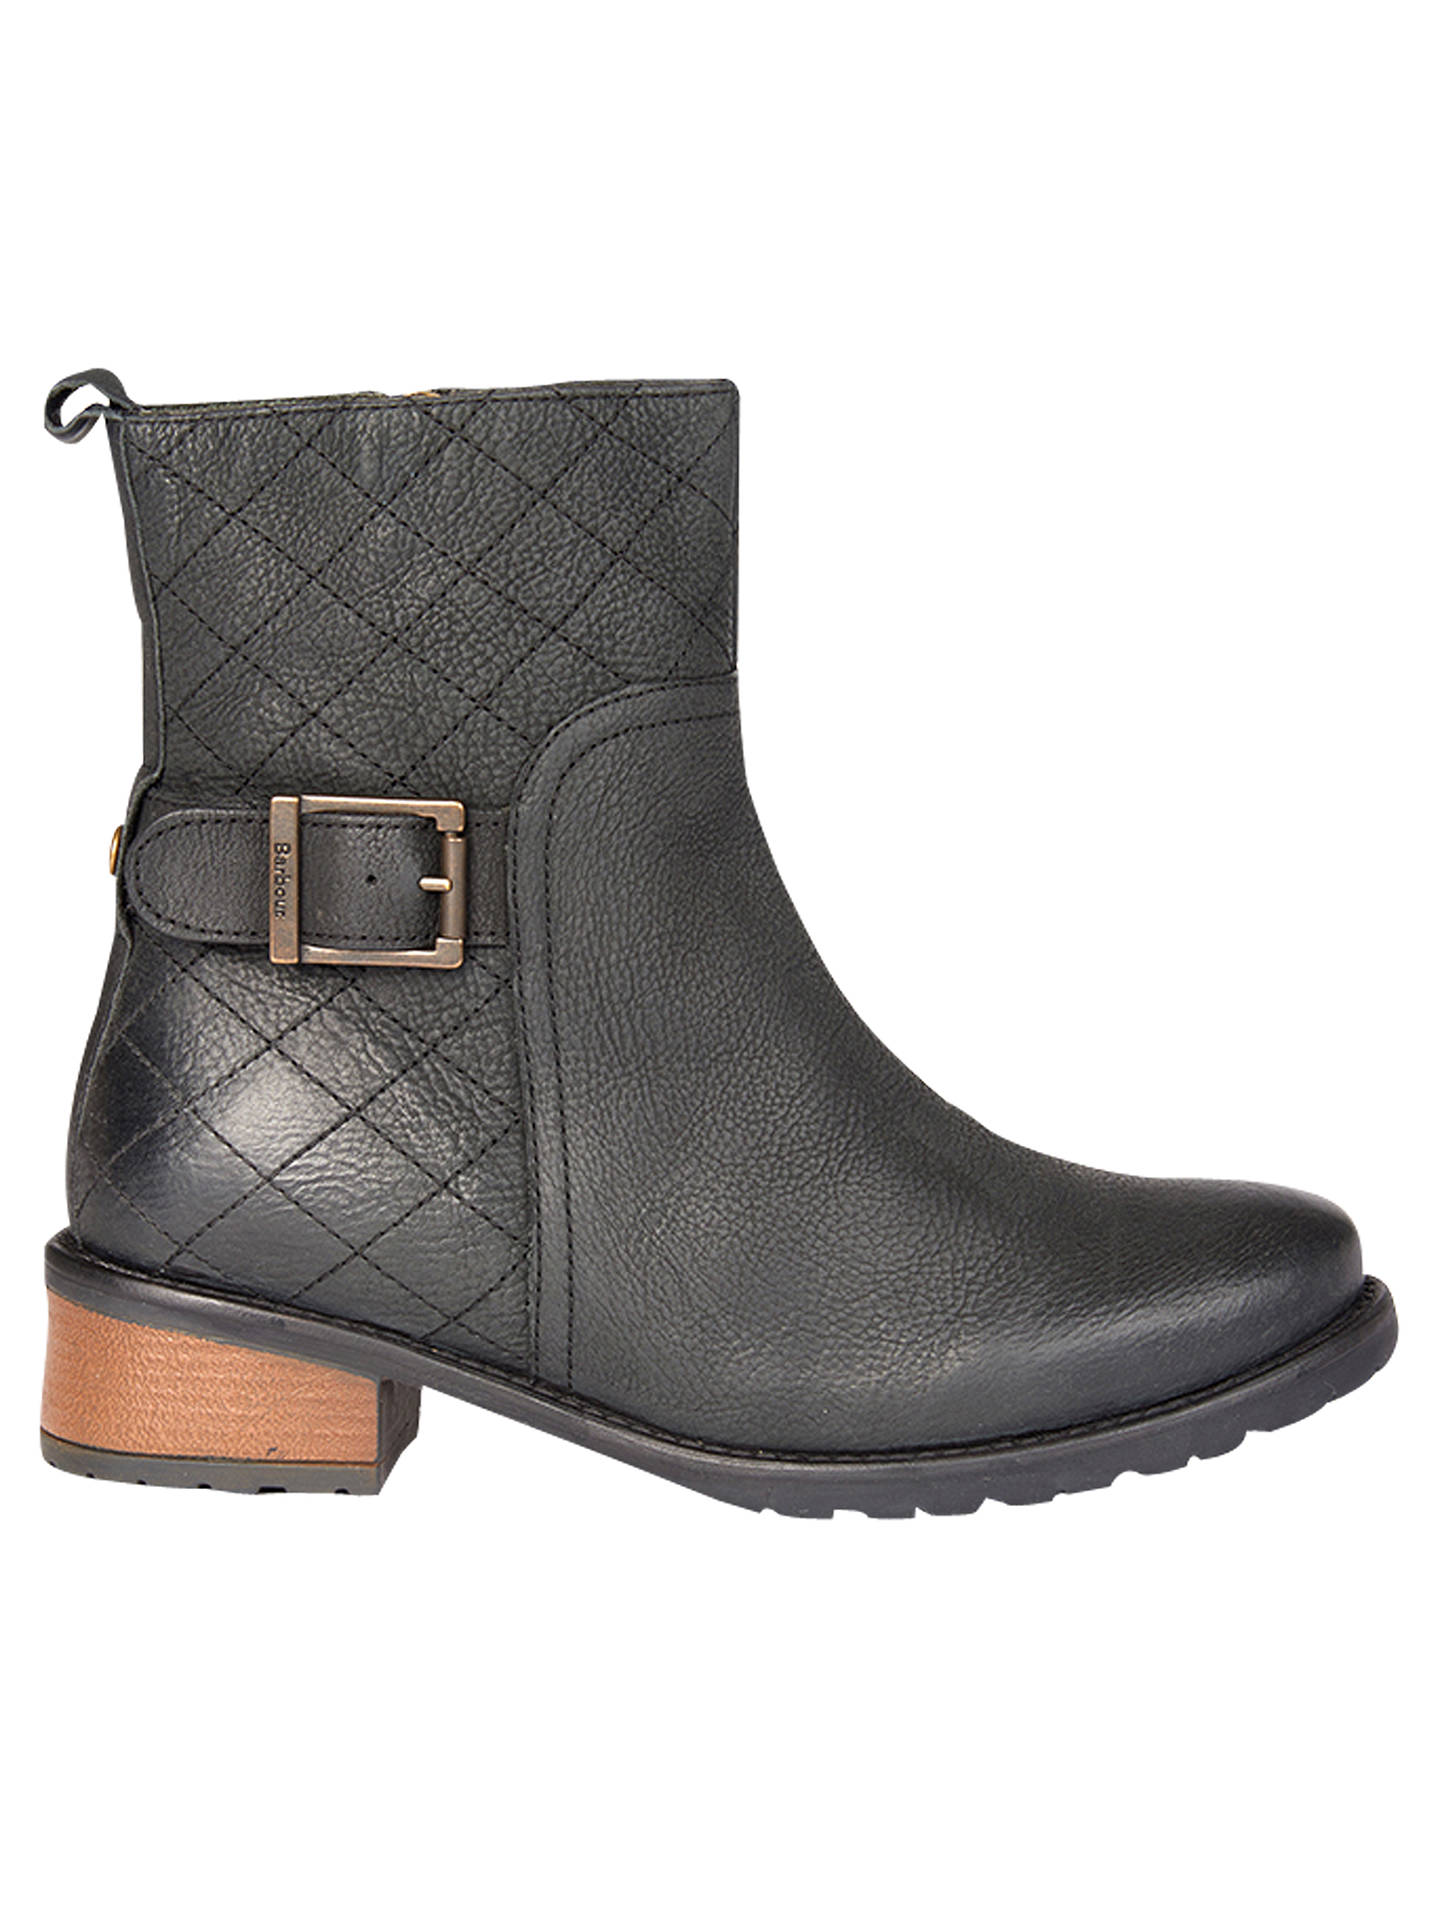 b6a43670dce Barbour Lambeth Block Heeled Ankle Boots at John Lewis & Partners